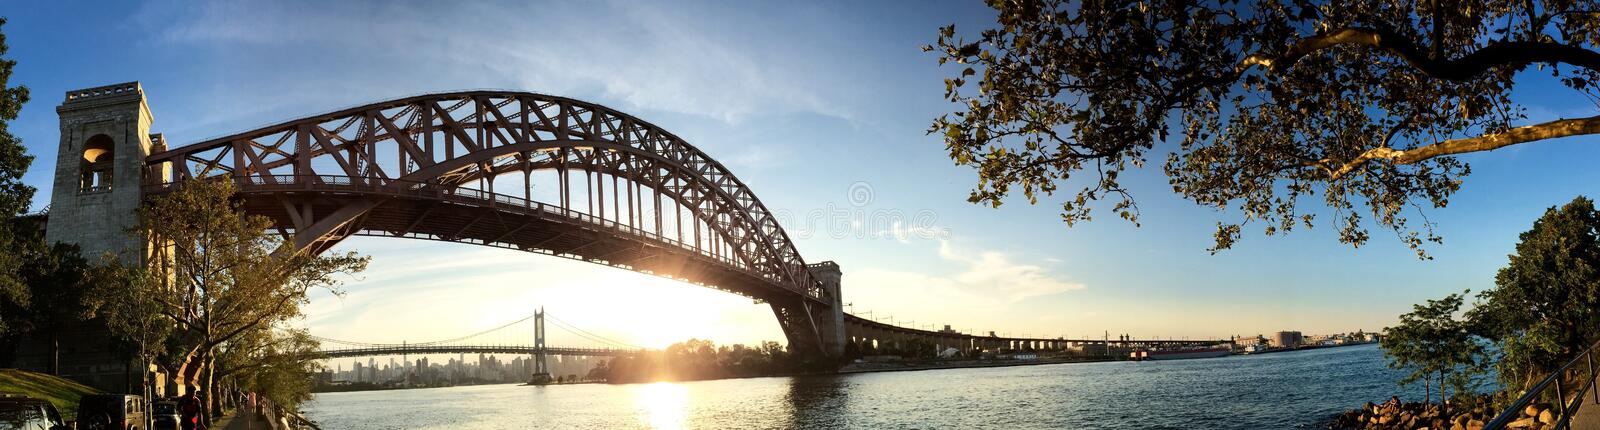 The Hell Gate Bridge and sunset sky royalty free stock image